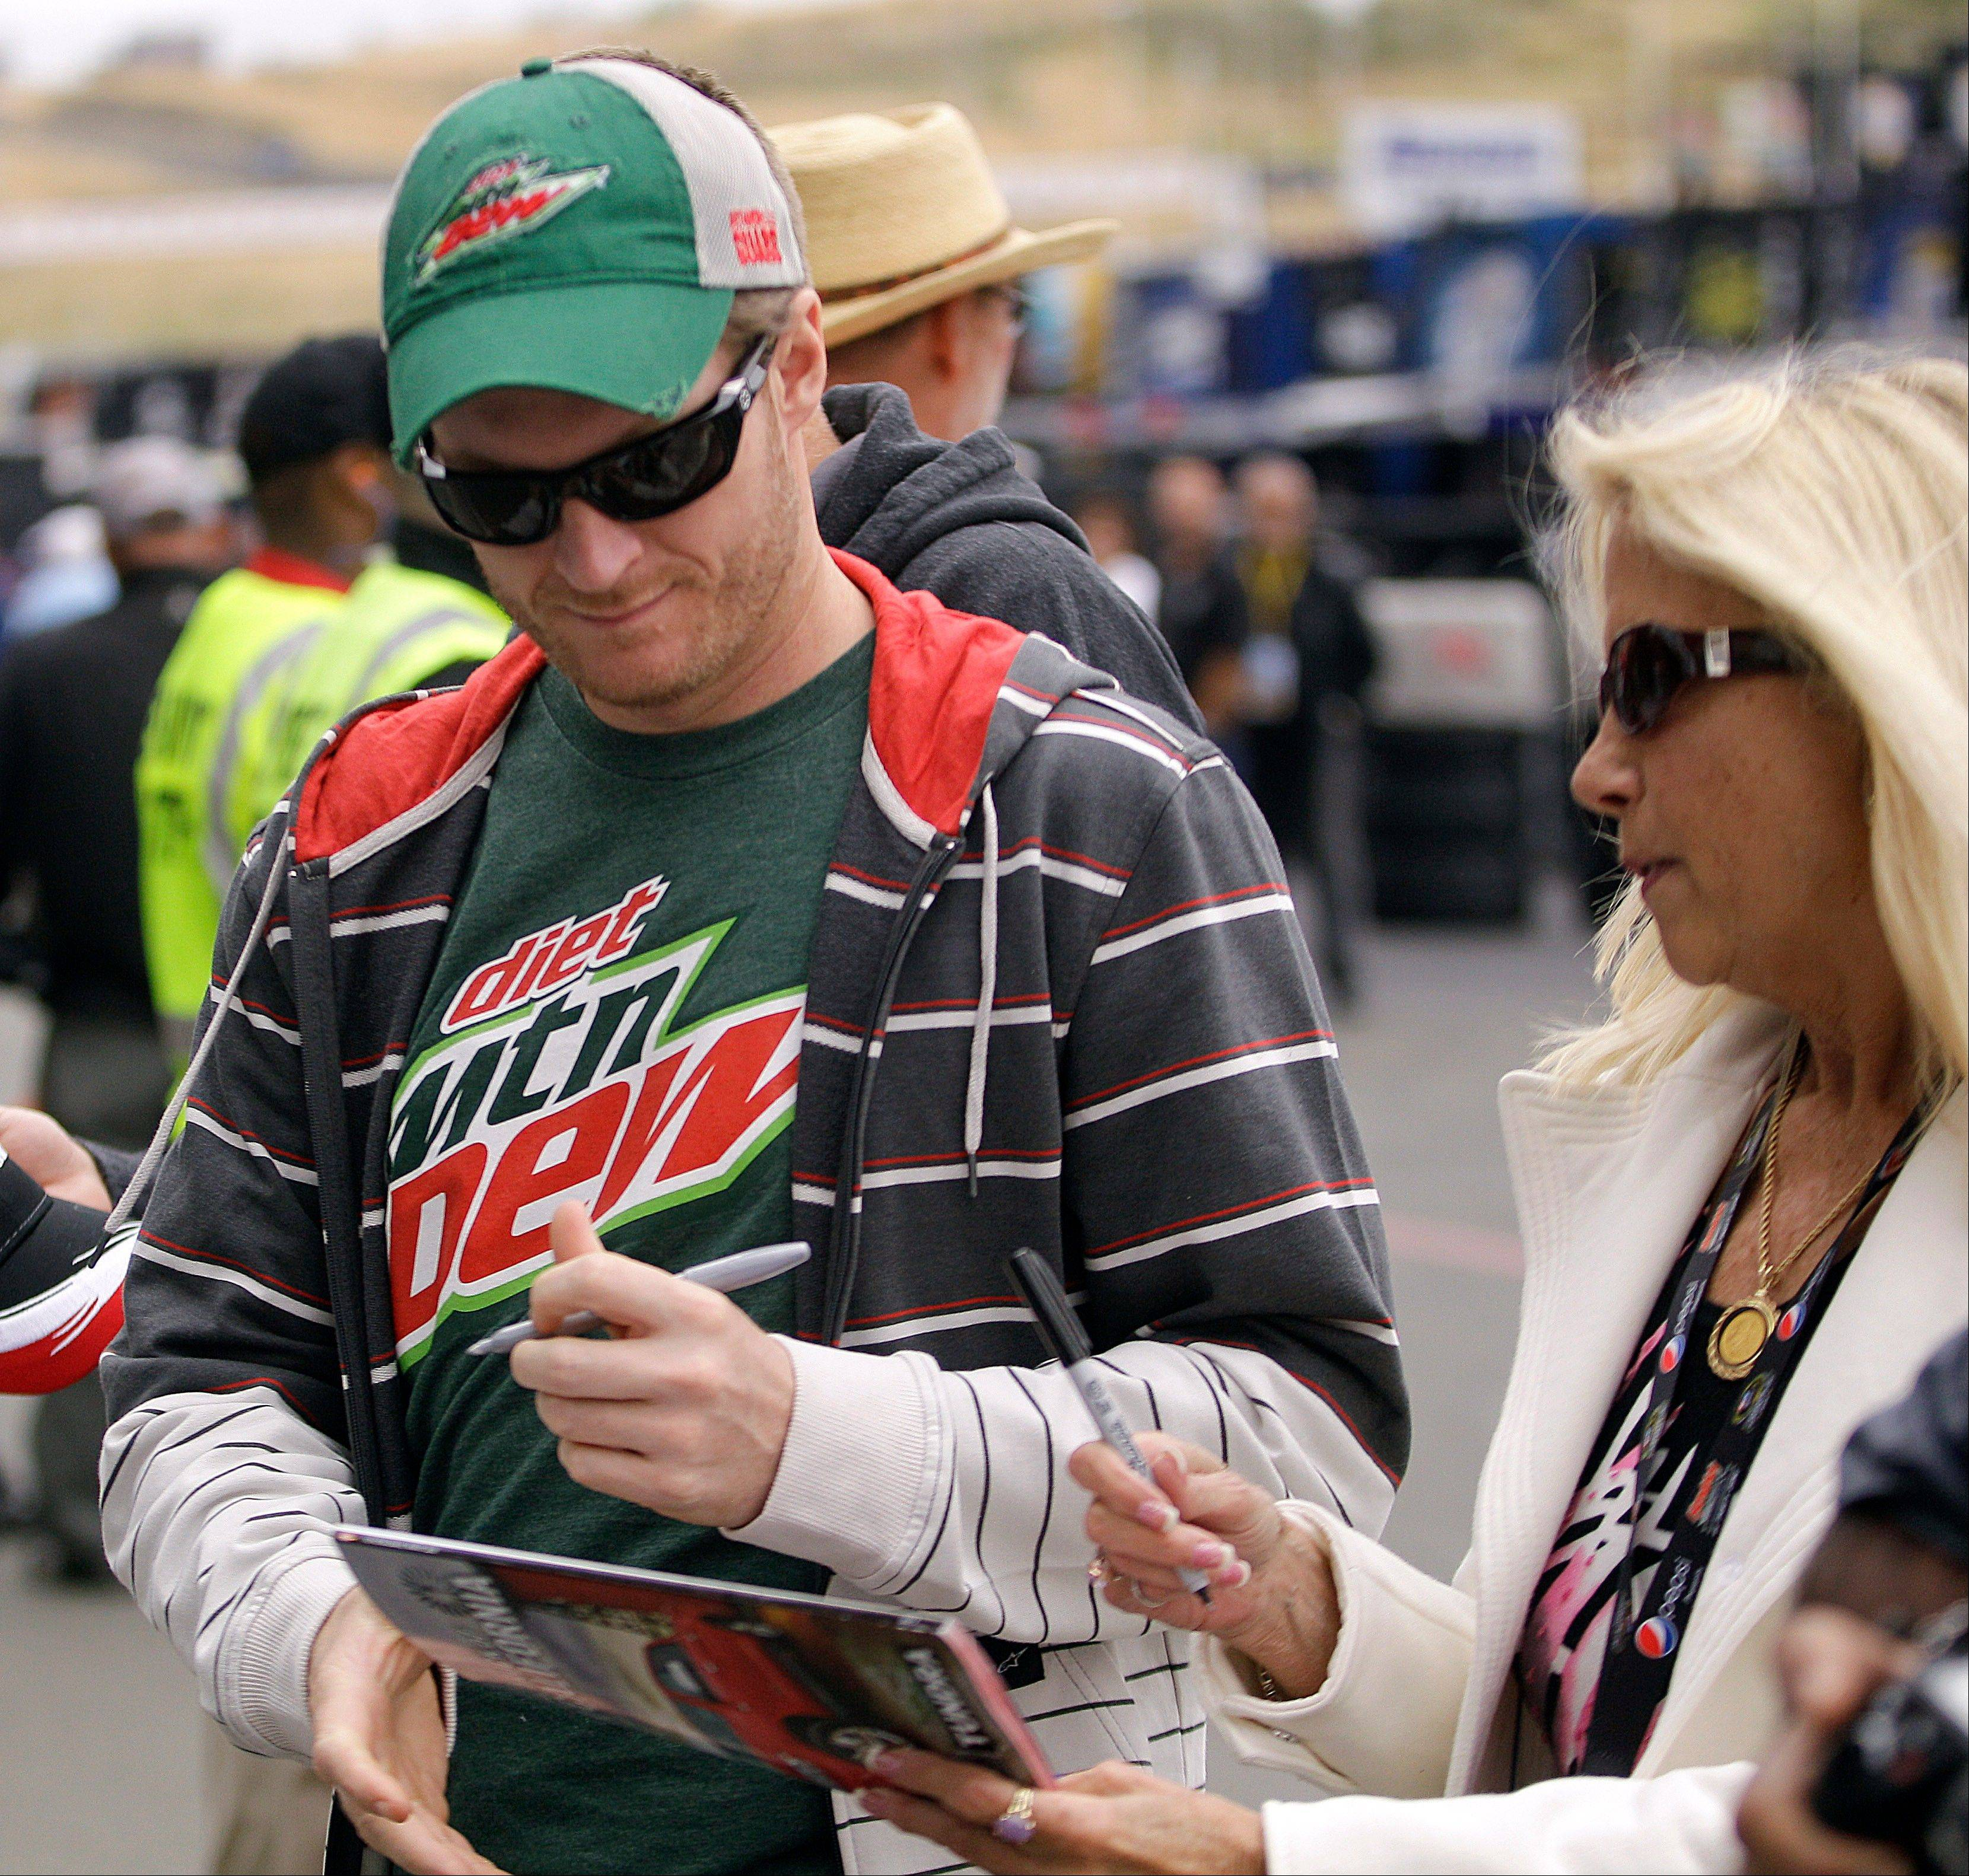 Dale Earnhardt Jr. signs an autograph for a fan prior to taking practice laps for Sunday's NASCAR Sprint Cup Series race in Sonoma, Calif.